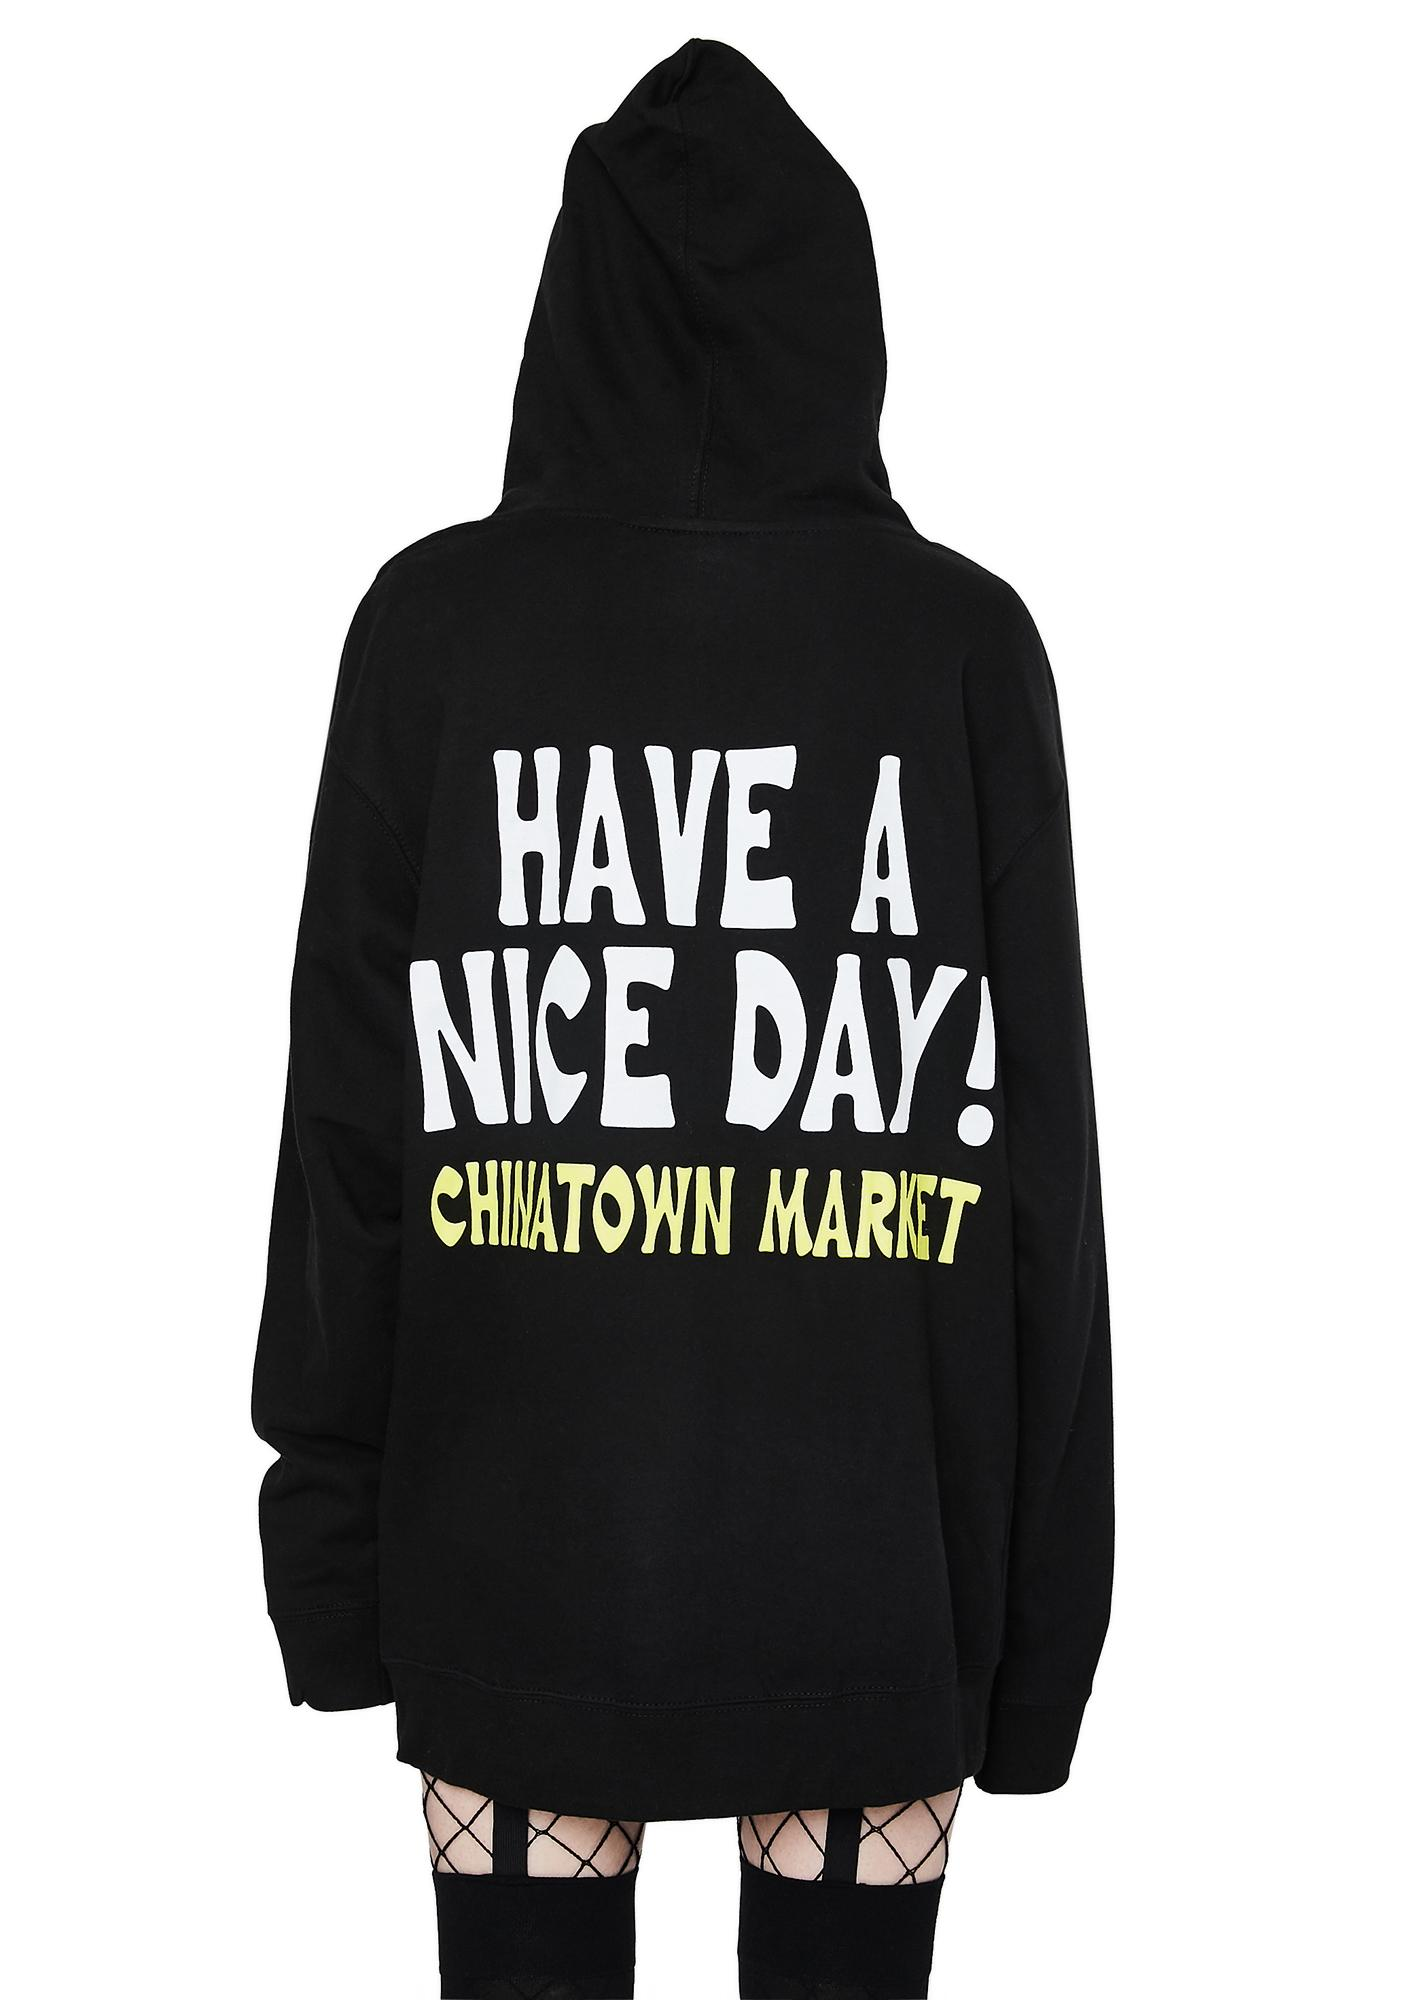 CHINATOWN MARKET Smiley Ball Gag Hoodie